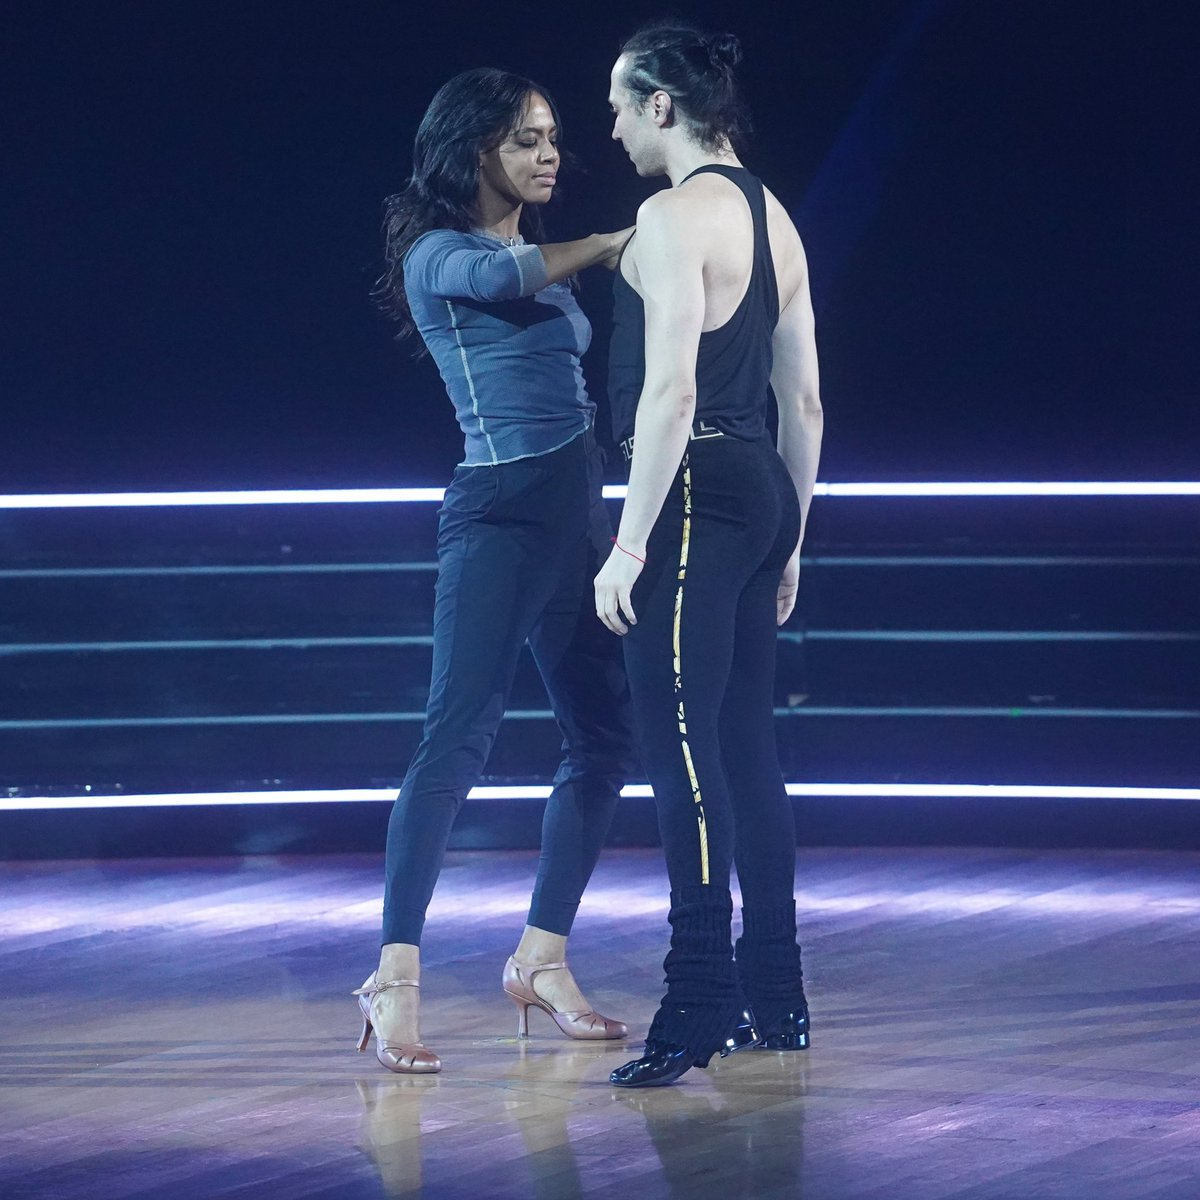 Our foxtrot is very special to us because it's all about our friendship. I couldn't have asked for a more glorious partner or friend to share this journey with than @BrittBStewart. I hope you all enjoy it and will consider us for your votes! @dancingabc #dwts #teambrijo #wonder